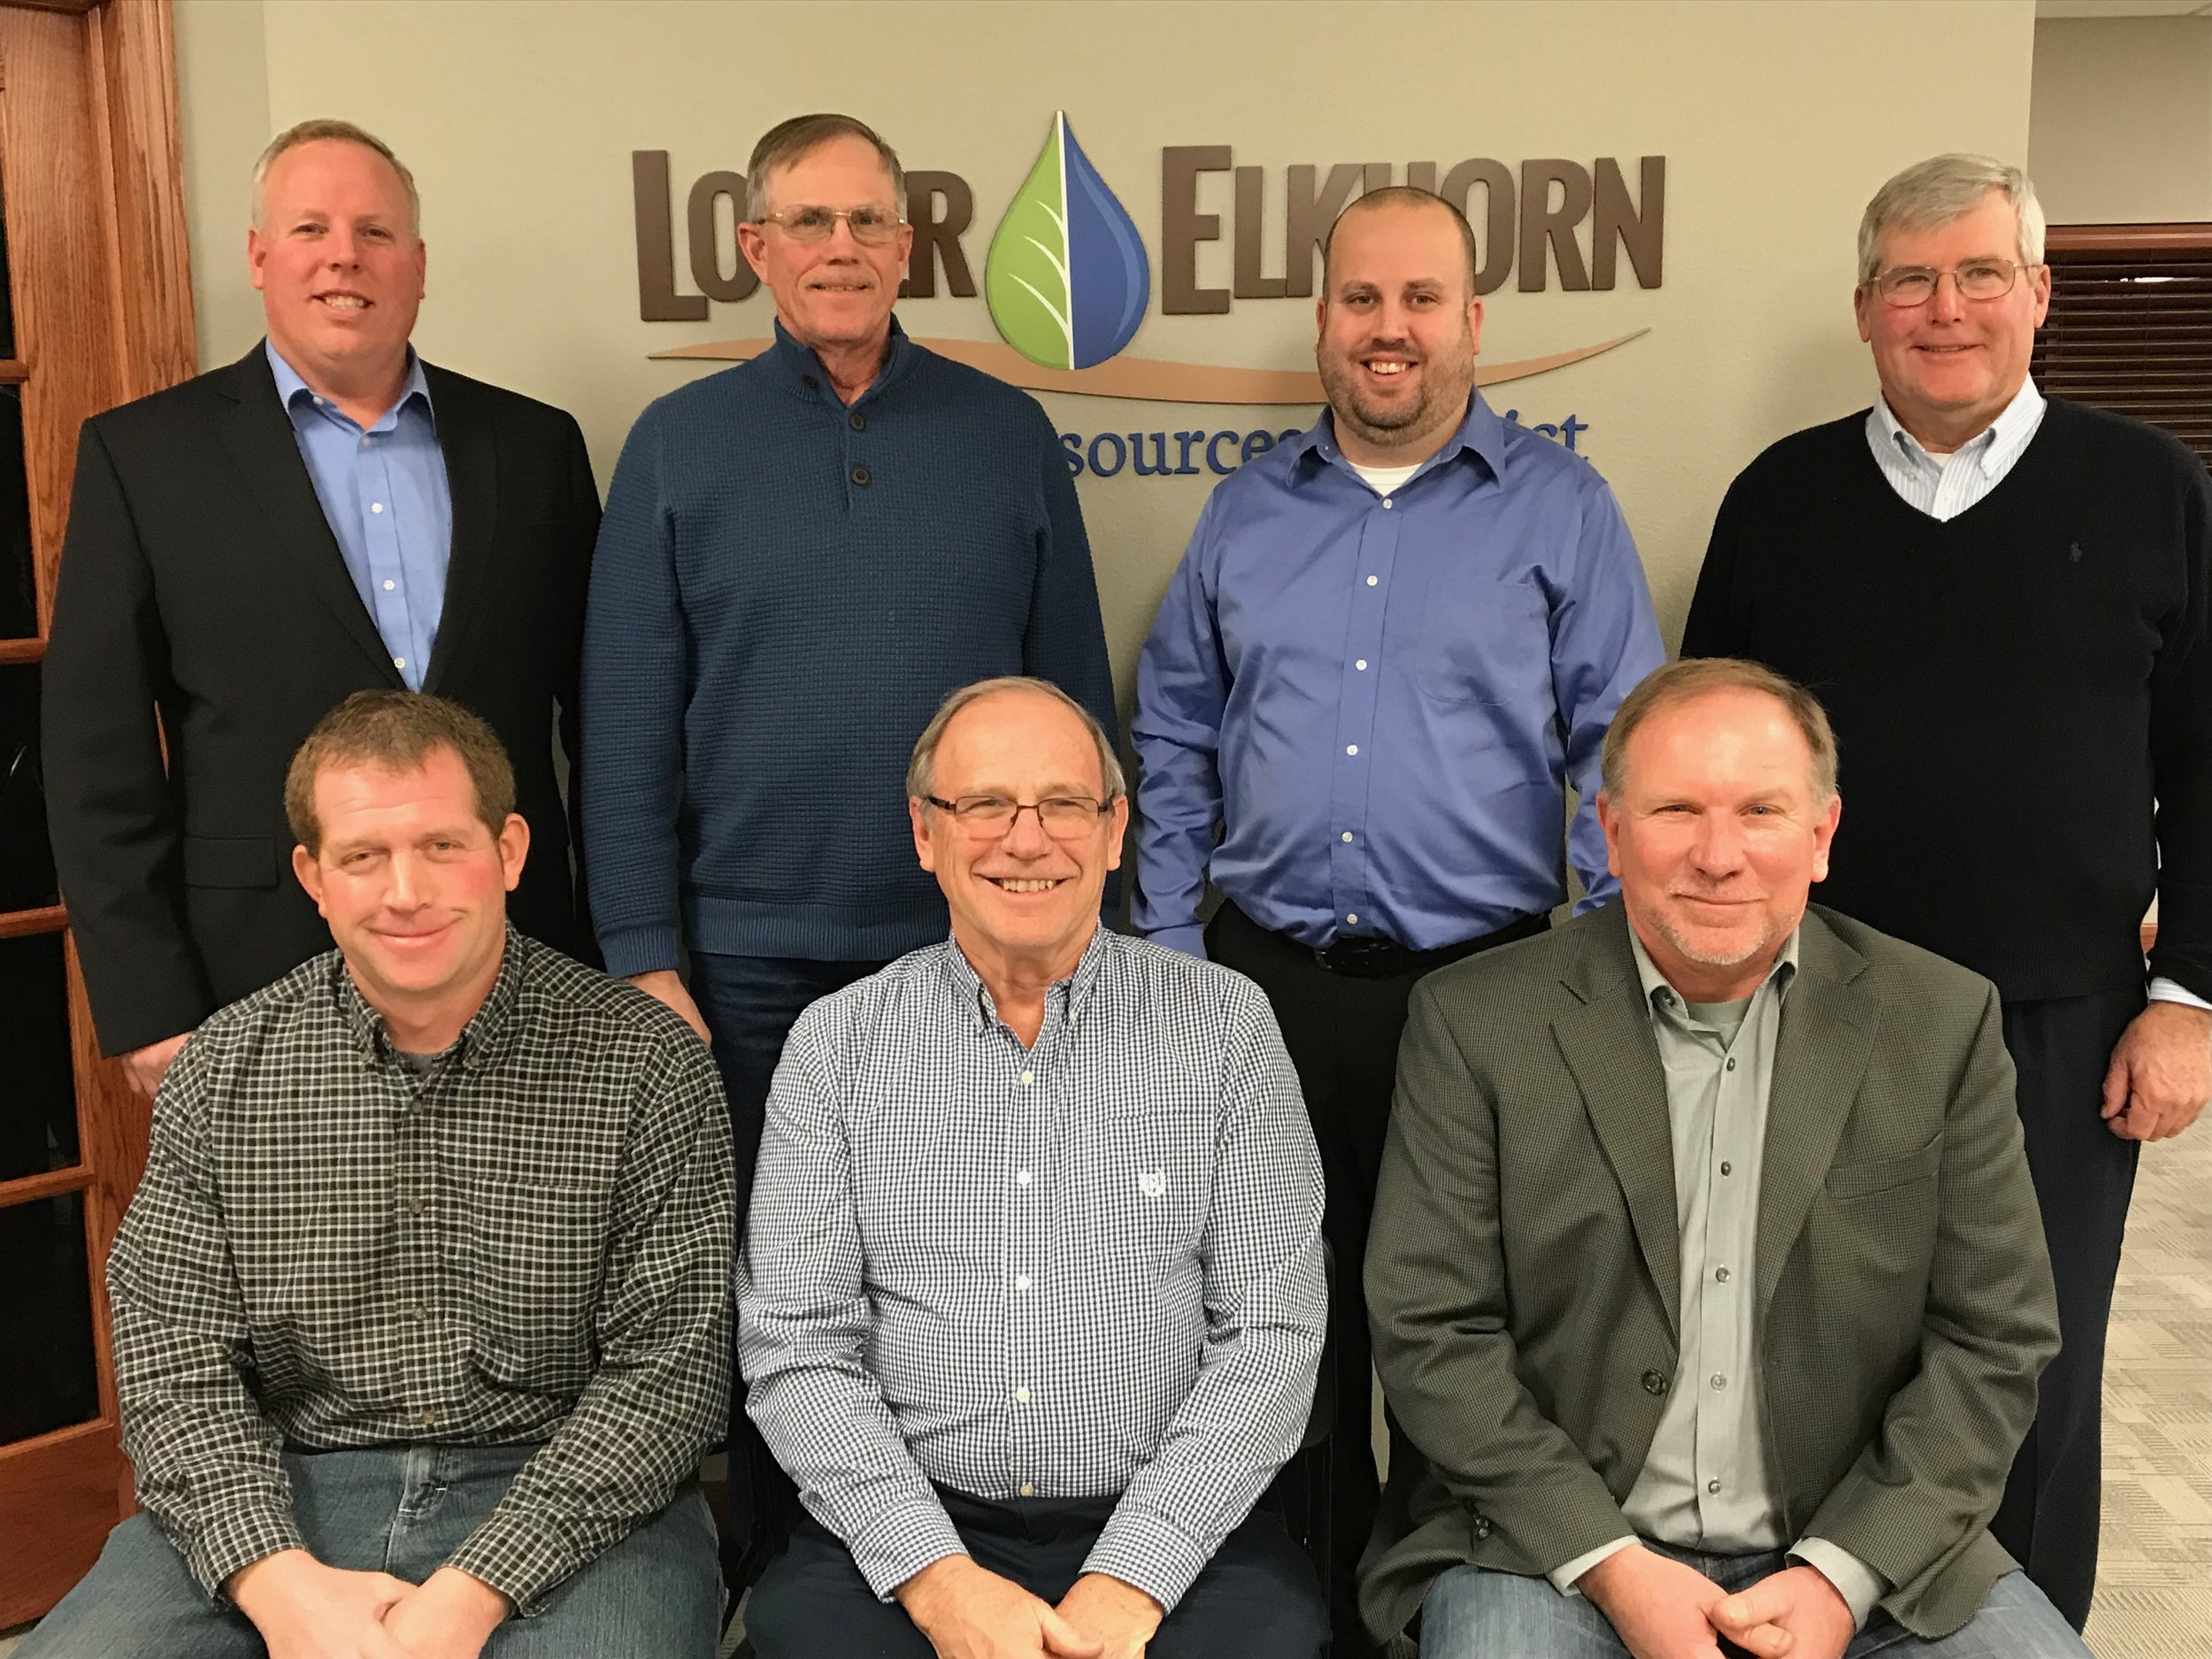 The board also elected officers for 2019. Pictured here is the Executive Board: (back row, from left to right): Joel Hansen, Wayne, Nebraska Association of Resources Districts (NARD) Alternate; Dennis Schultz, Wisner, Past-Chairman; Scott McHenry, Norfolk, NARD Delegate; David Kathol, Norfolk, Treasurer. (Front row, from left to right): Matt Steffen, West Point, Secretary; Gary Loftis, Craig, Chairman; and Kurt Janke, Wayne, Vice-Chairman.